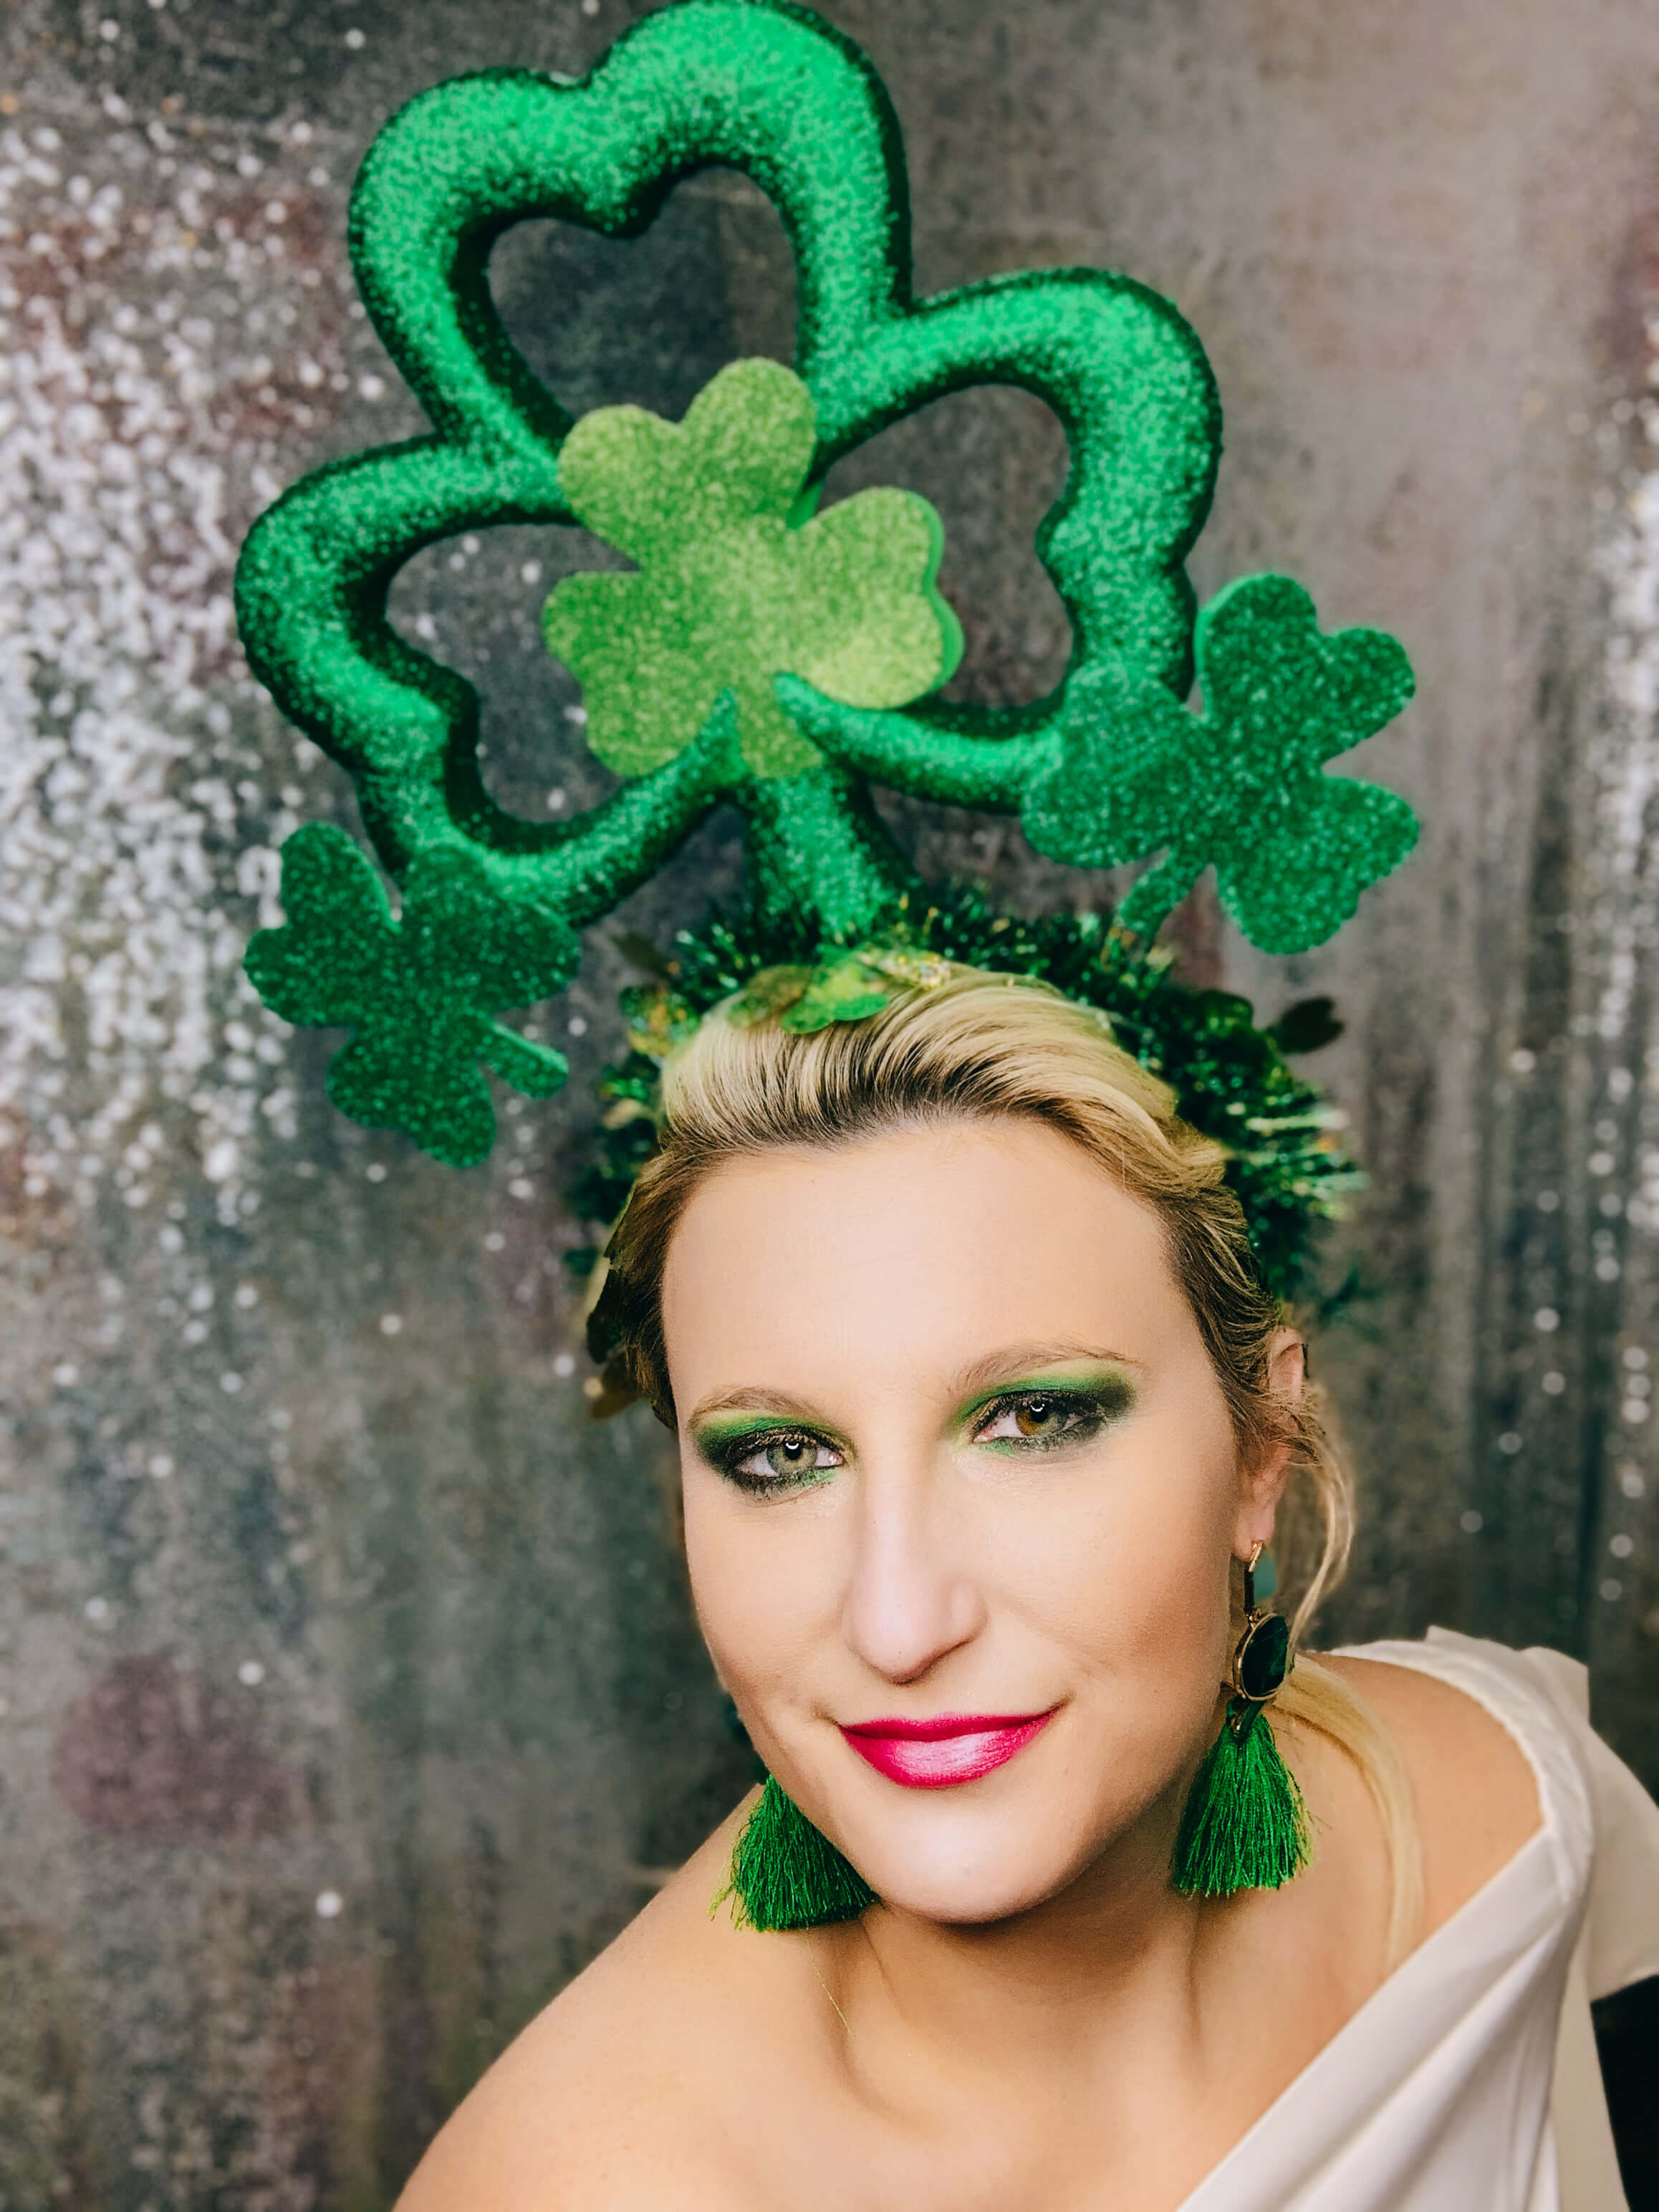 St. Patricks Day Headpiece. St. Patricks Day Accessories. St. Patrick's Day Outfit. Green outfit. Lucky Headband. Clover Headband. St. Patrick's day Headband. Shamrock Headband. Shamrock outfit. Green style. St. Patrick's Day Style.